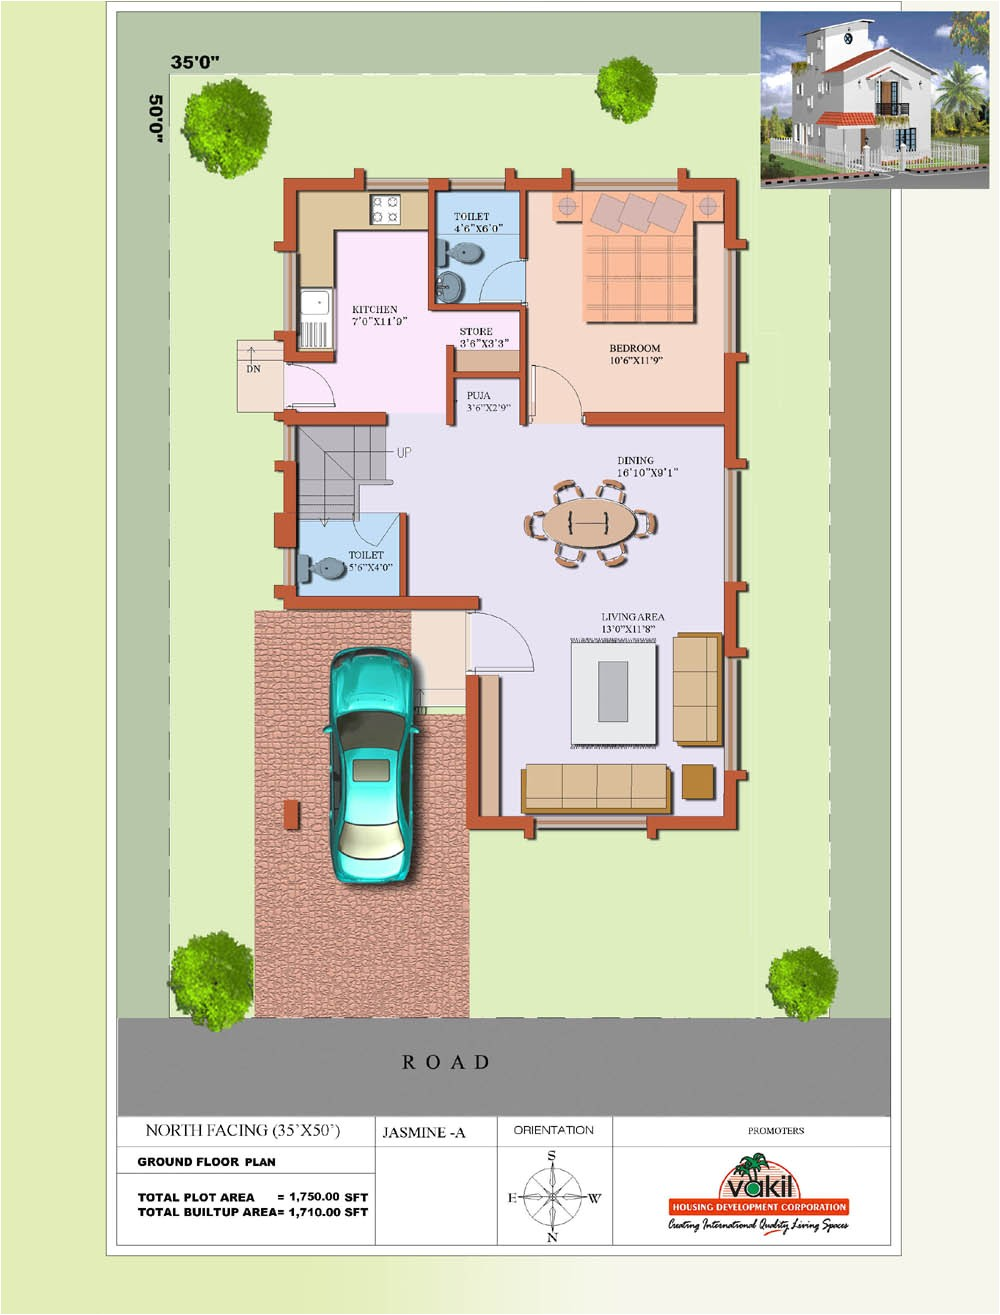 40 x 30 house plans east facing